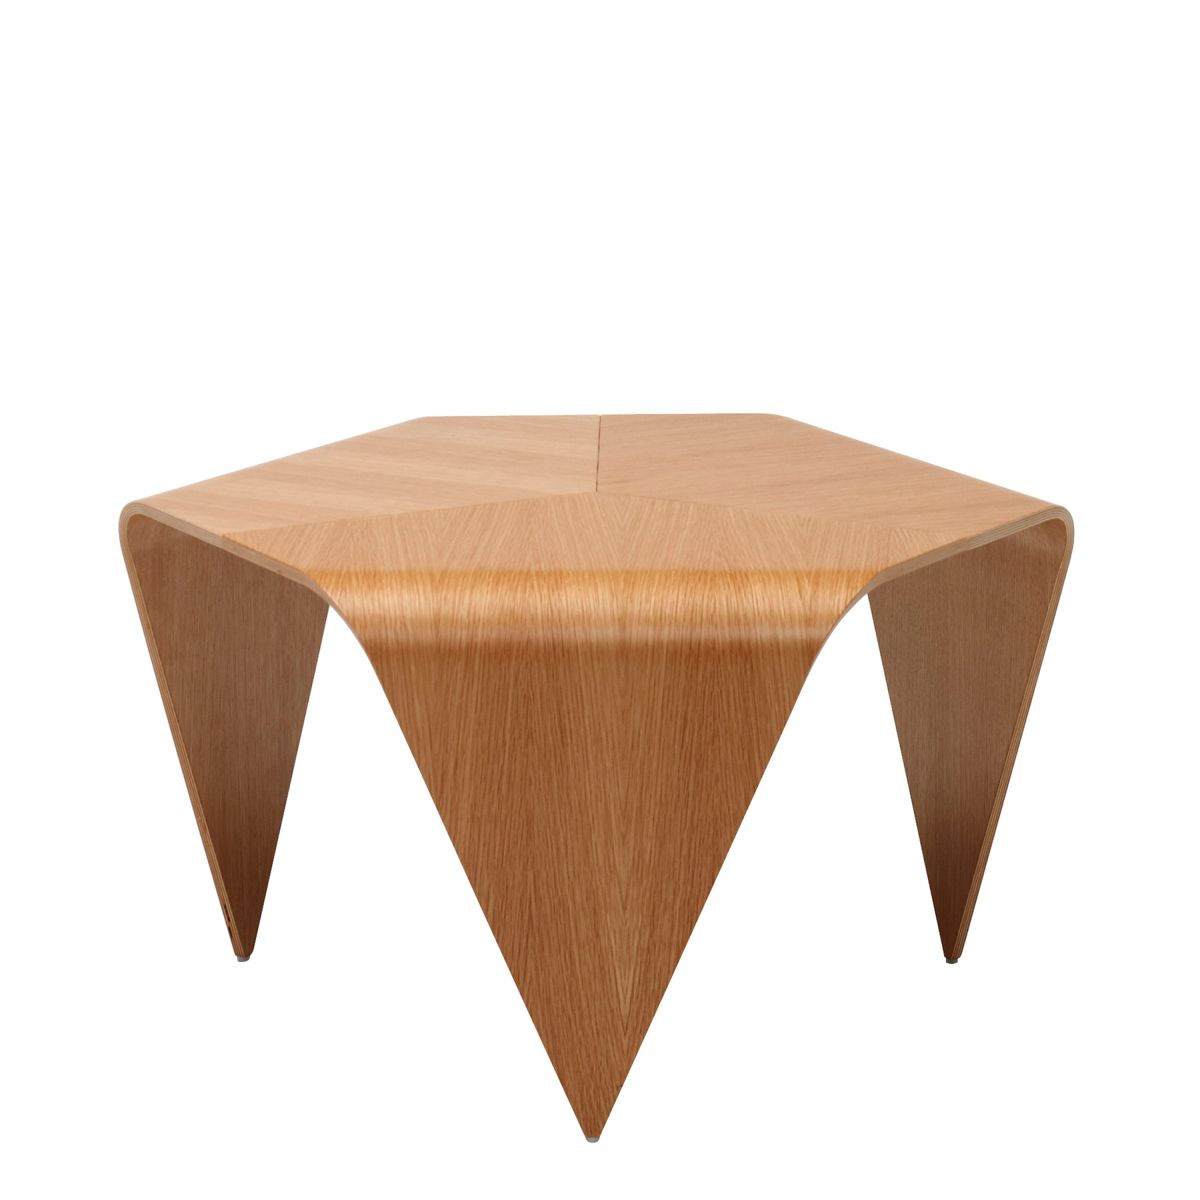 Trienna-Table-Oak_Web-1975963